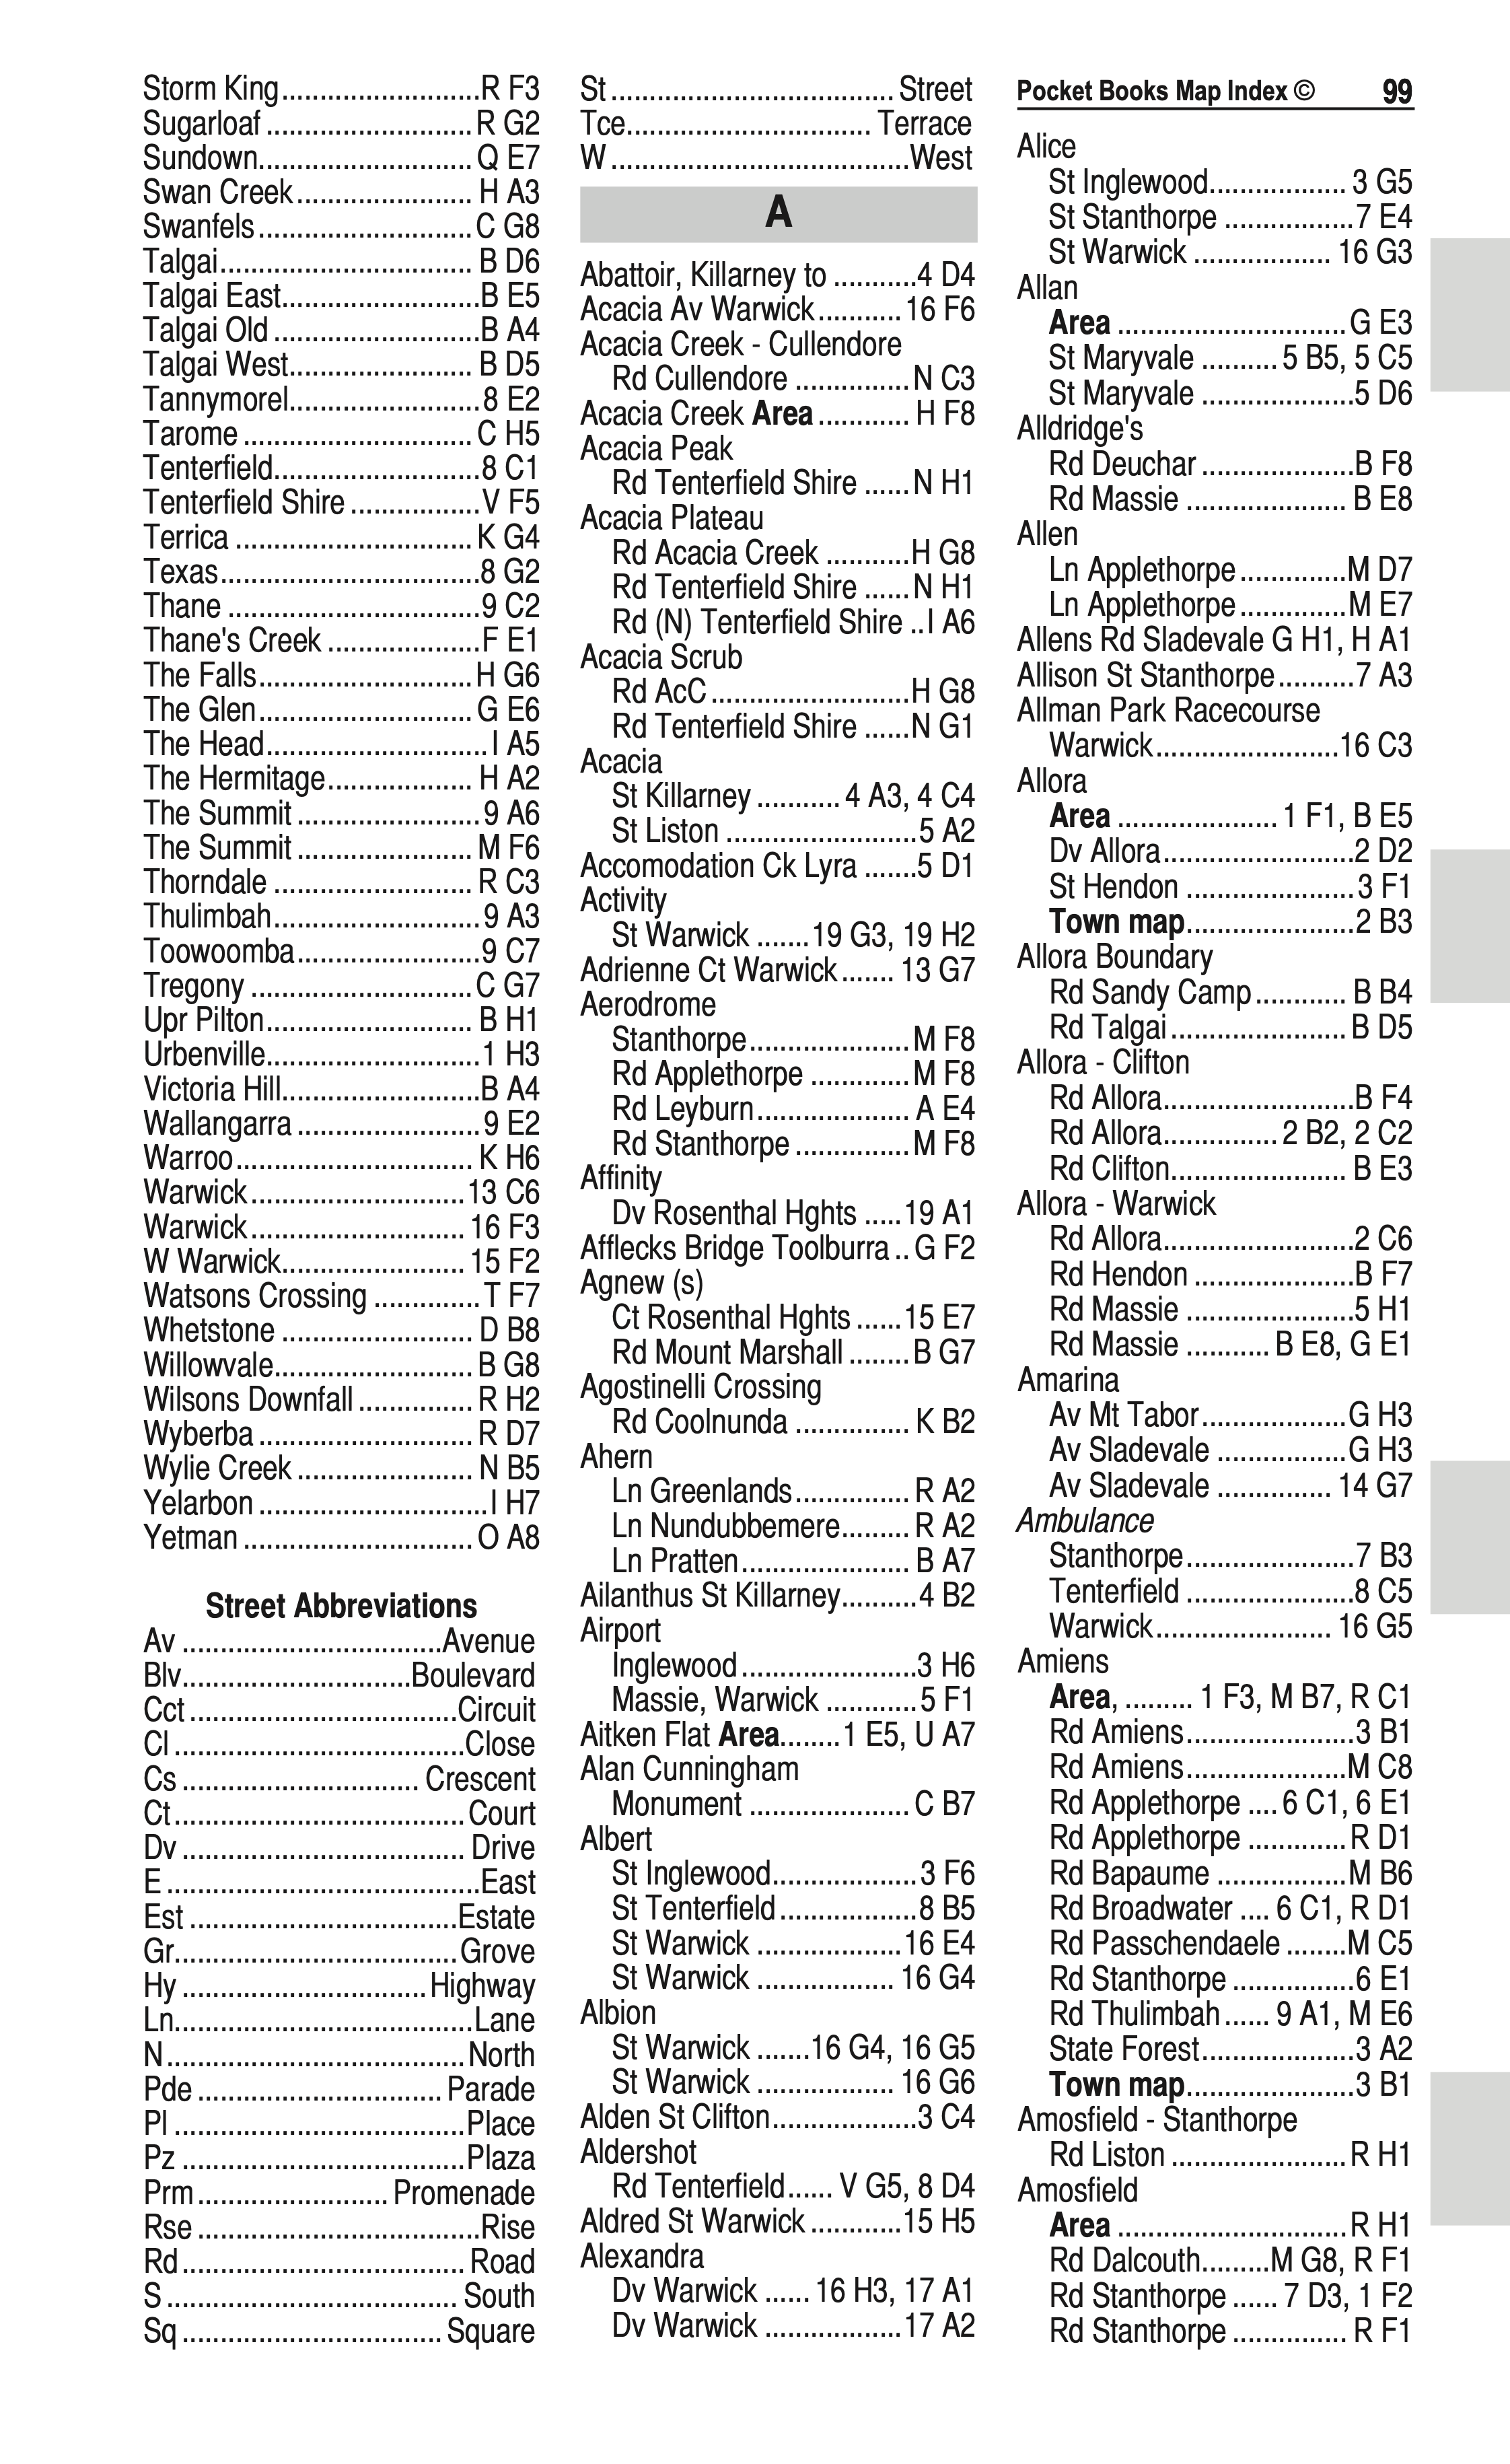 Warwick Solar Panels | Solar Energy in Warwick | PBezy Pocket Books local directories - page 99